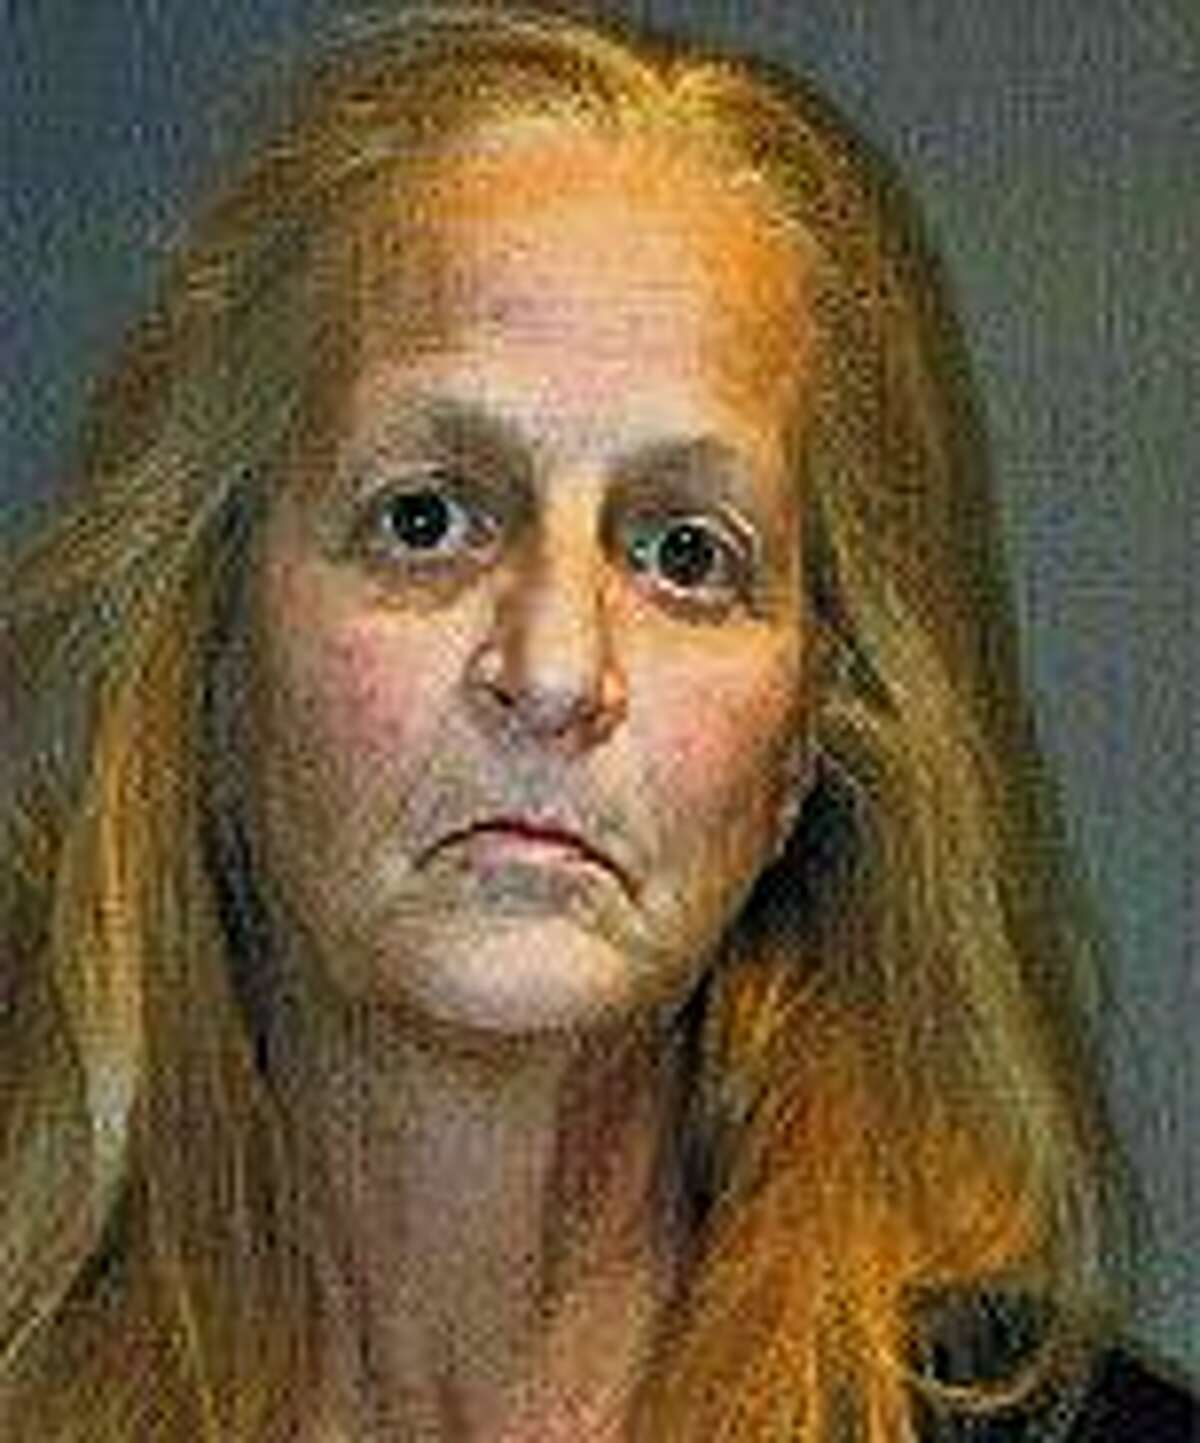 Laurie Herb, 51, of Stratford, a bartender at Stony Brook Bar and Restaurant in Stratford, was charged with the sale of cocaine at the business. Also charged was Angelo Recine, 68, of Bridgeport, the bar owner. He was charged with with three counts of sale of cocaine and one count of operating a drug factory. Also arrested was the bartender, Laurie Herb, 51, of Stratford. Herb was charged with four counts of sale of cocaine. The arrests were made on Thursday, Oct. 12, 2017.